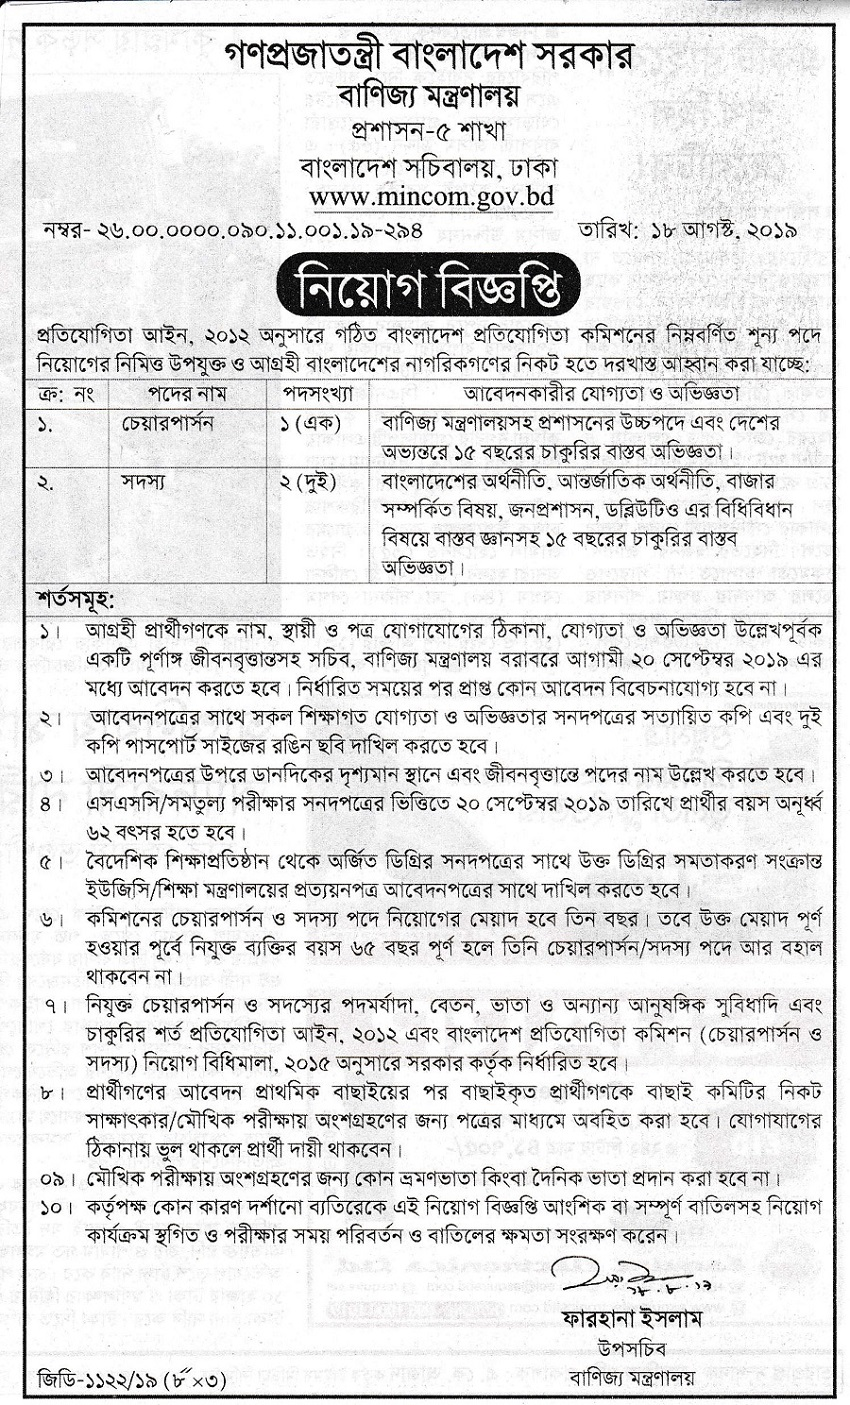 Bangladesh Competition Commission (CCB) Job Circular 2019